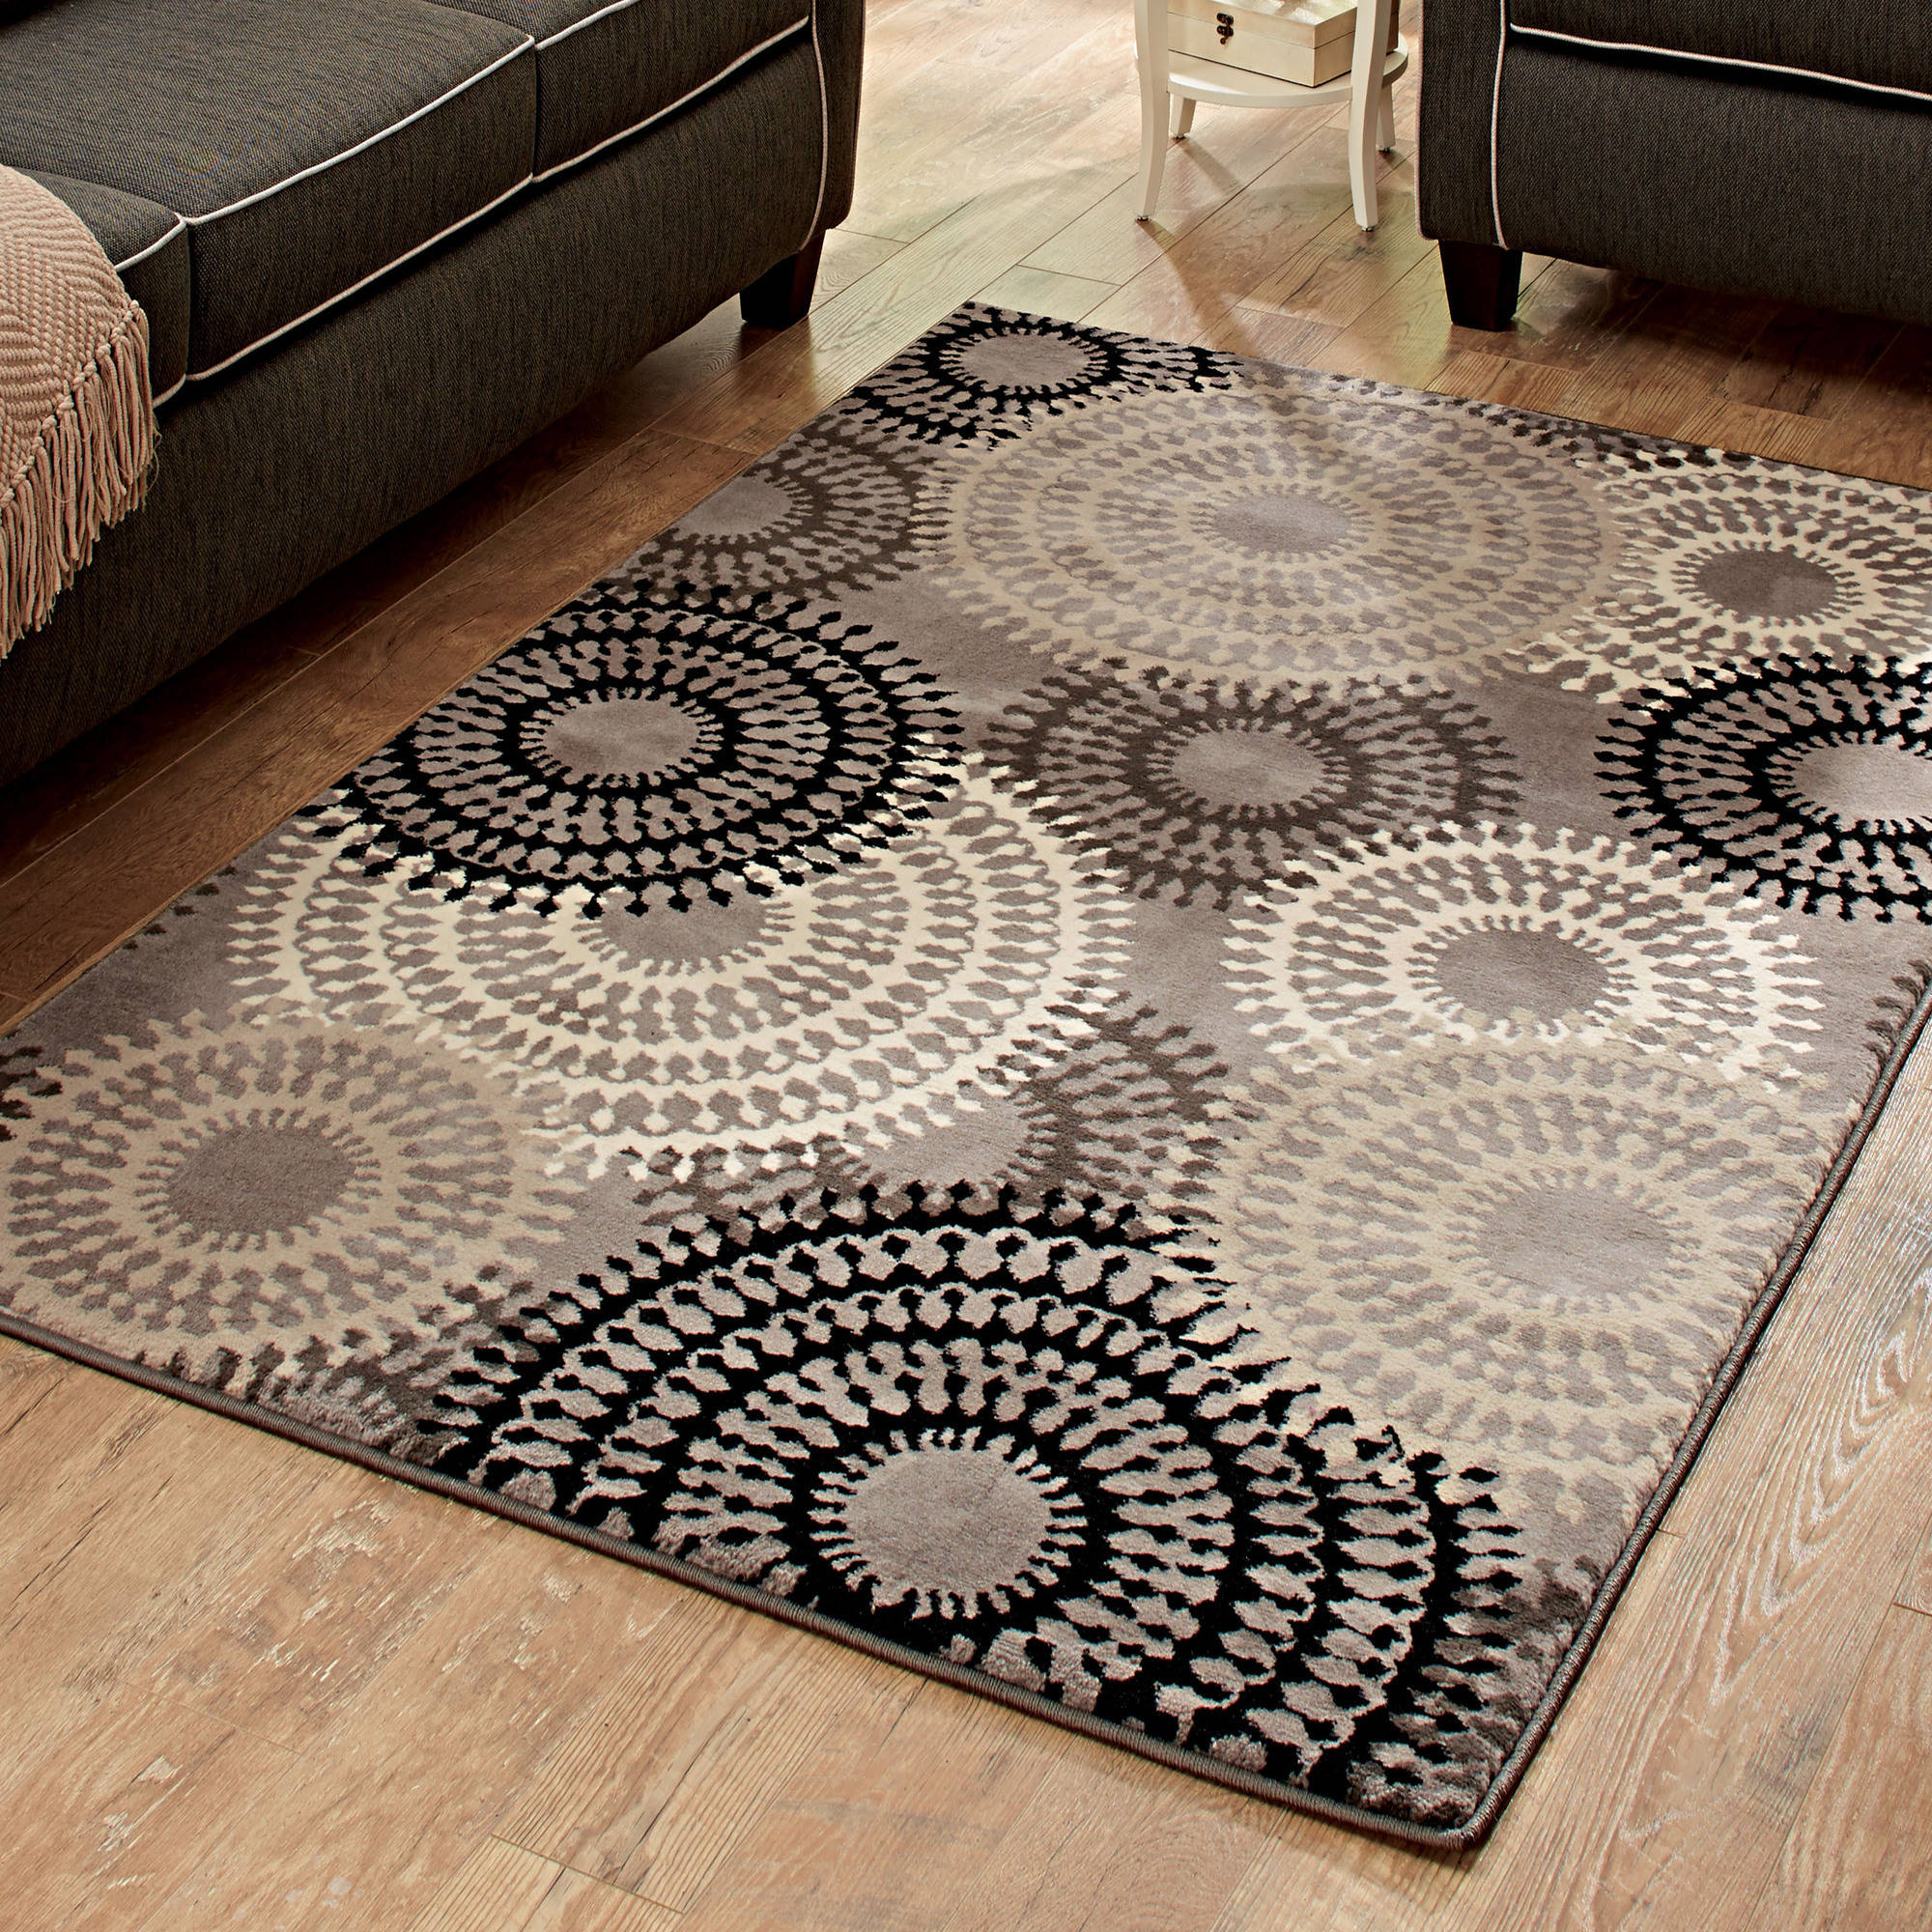 Better Homes and Gardens Taupe Ornate Circles Area Rug or Runner